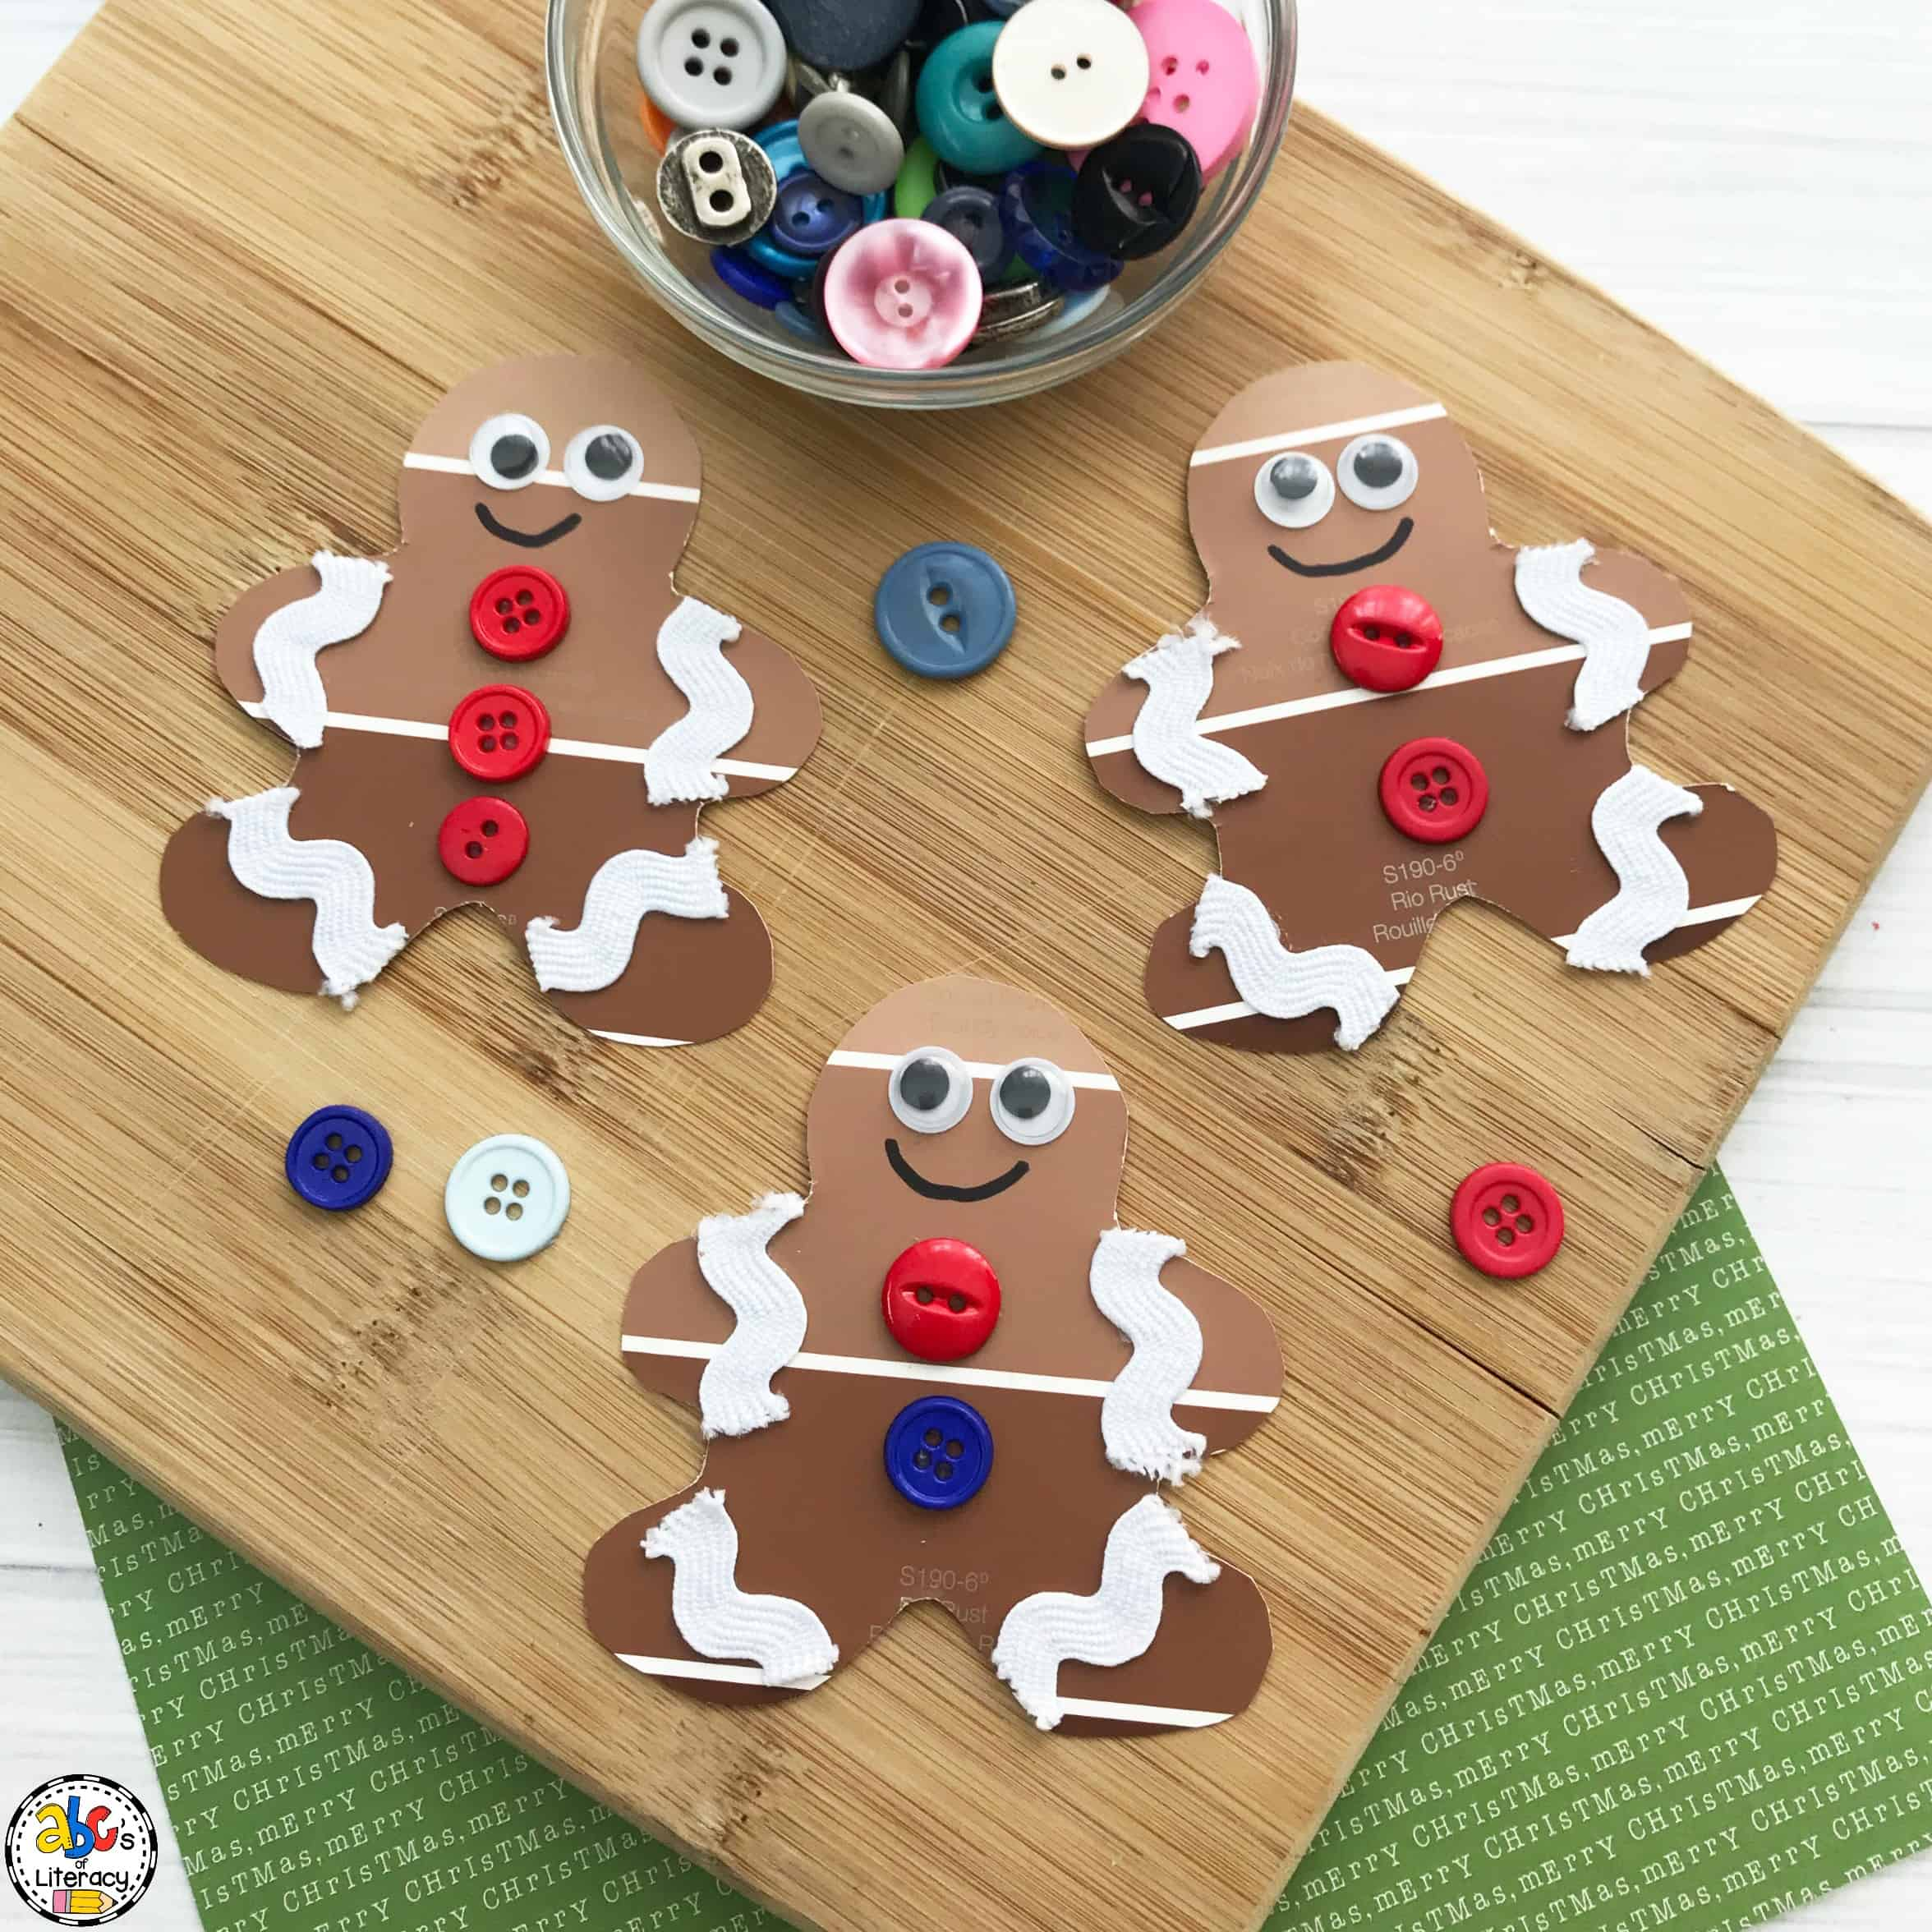 paint chip gingerbread craft on wooden board with jar of buttons nearby